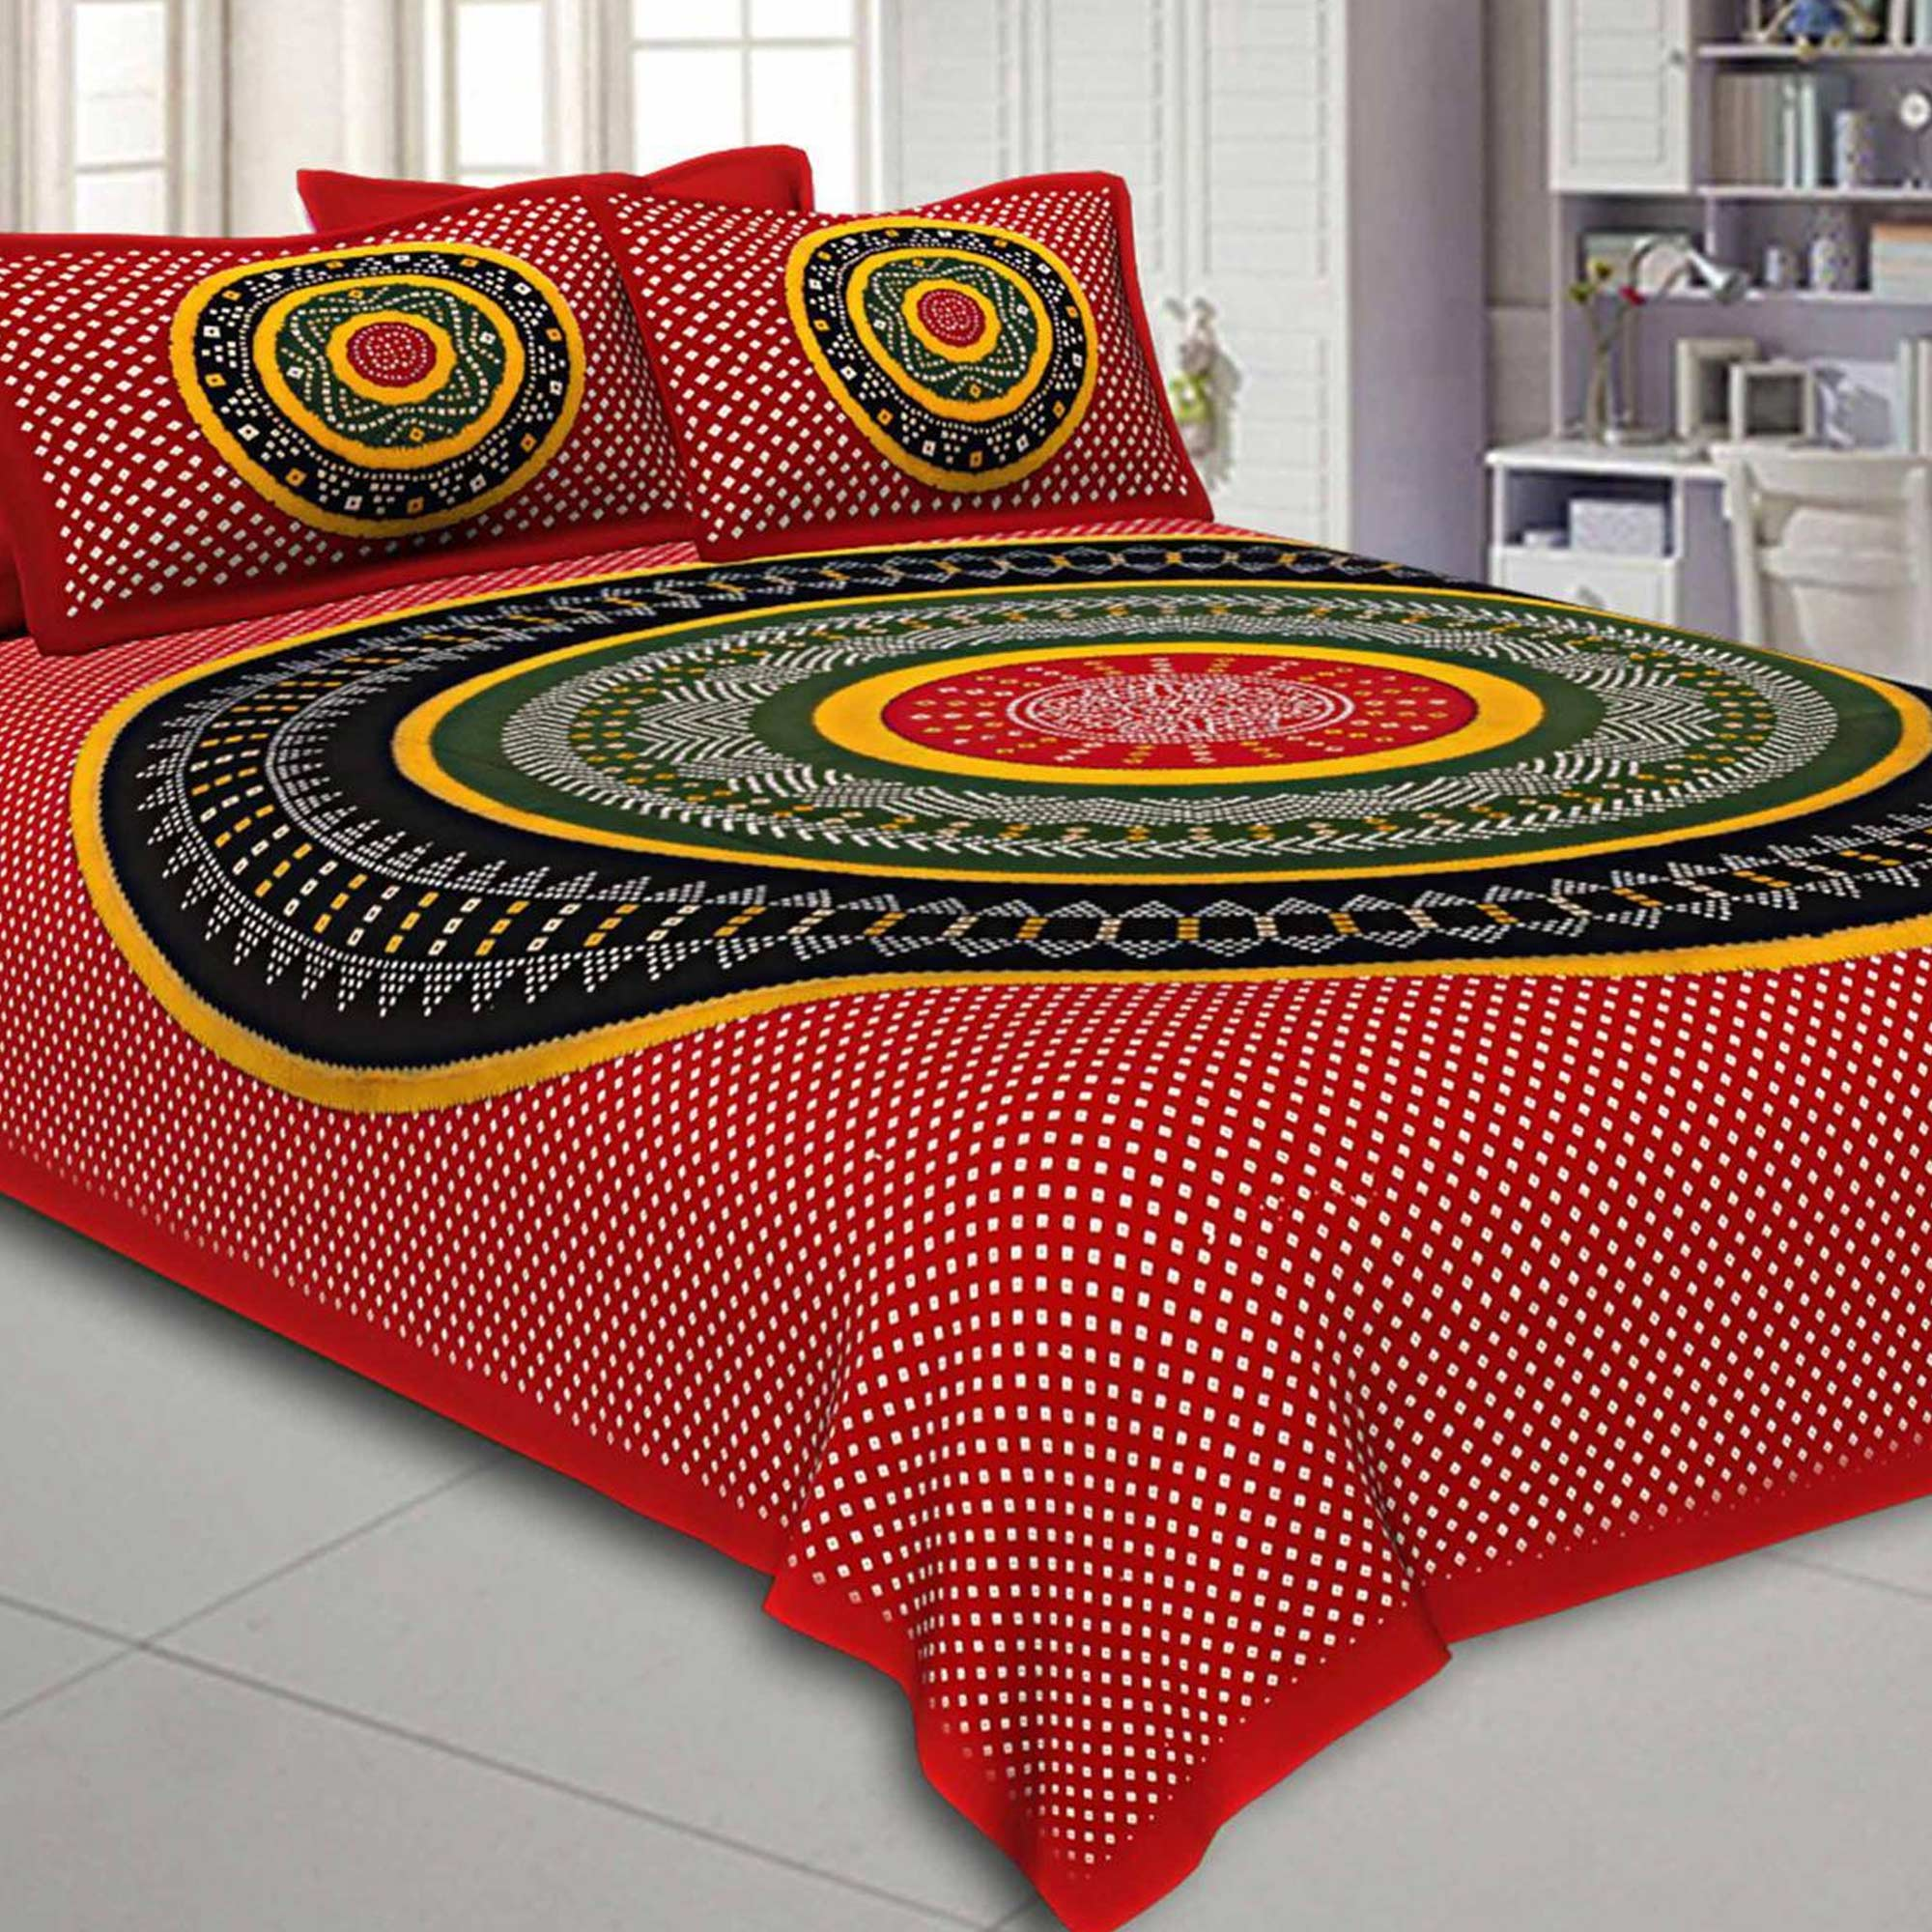 Refreshing Printed Double Sized Bed Sheets With 2 Pillow Covers - Pack of 2